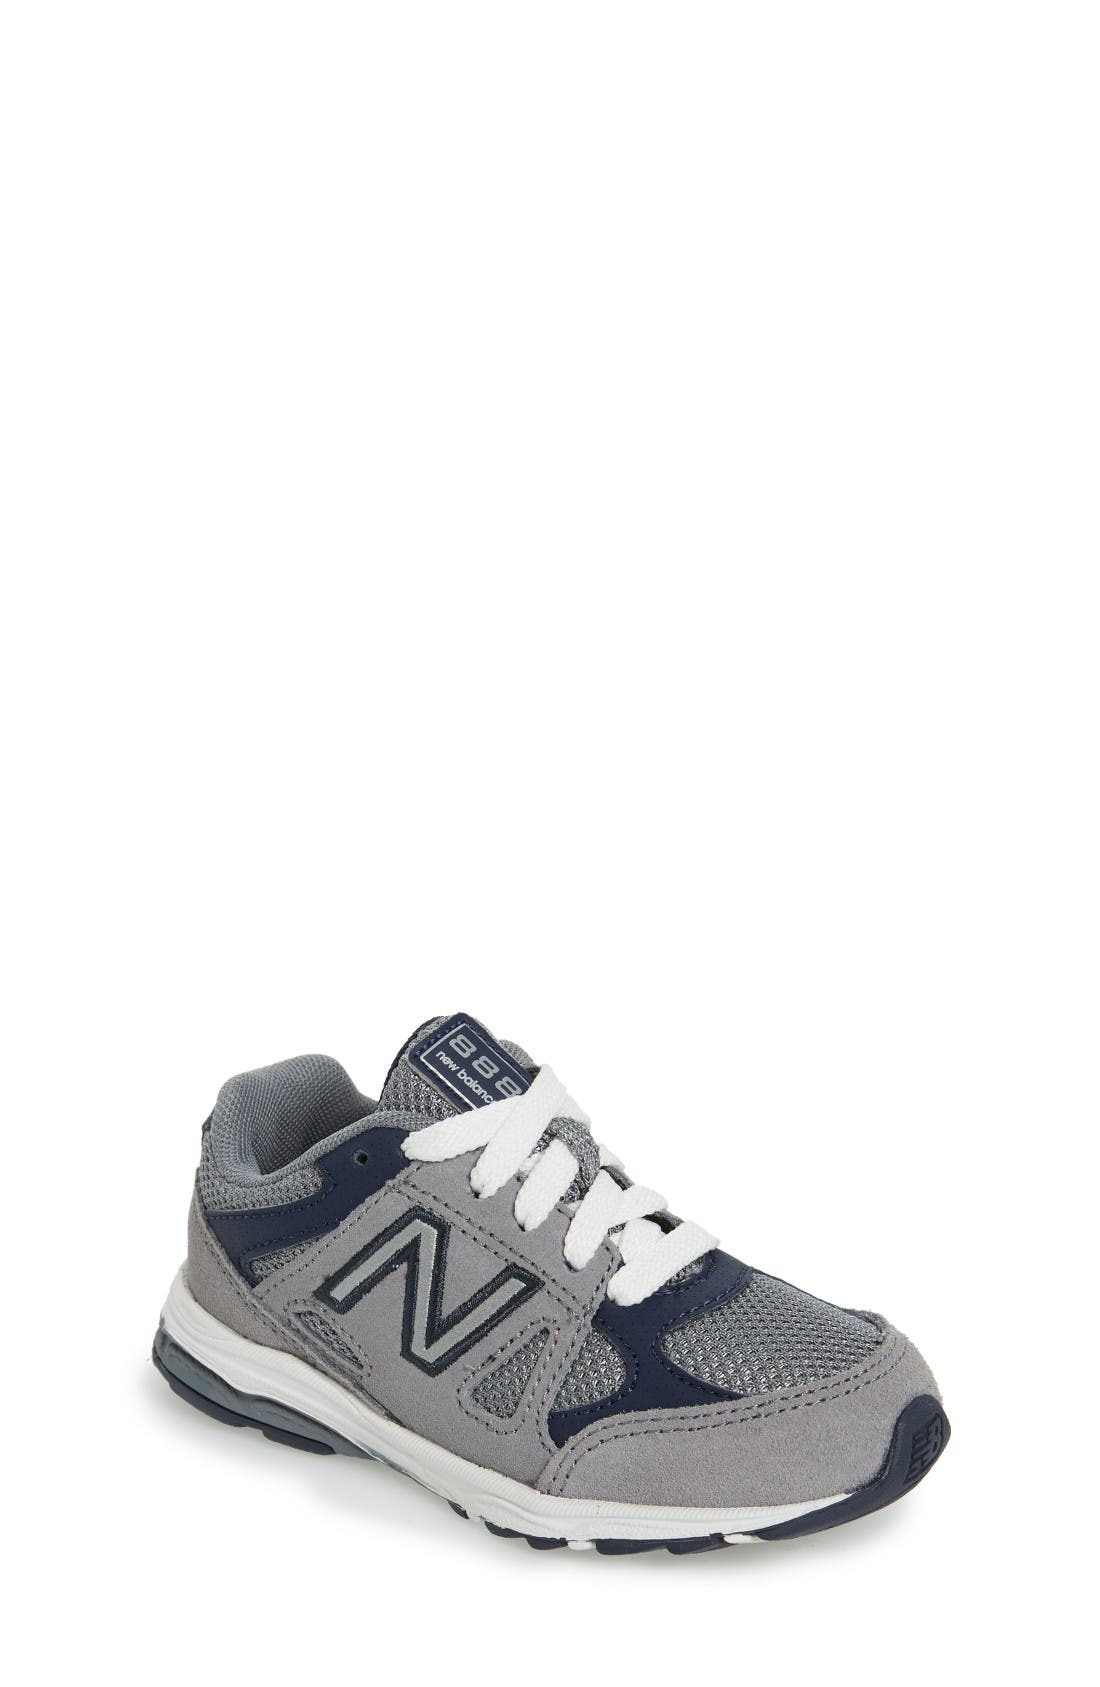 new balance for toddler boy